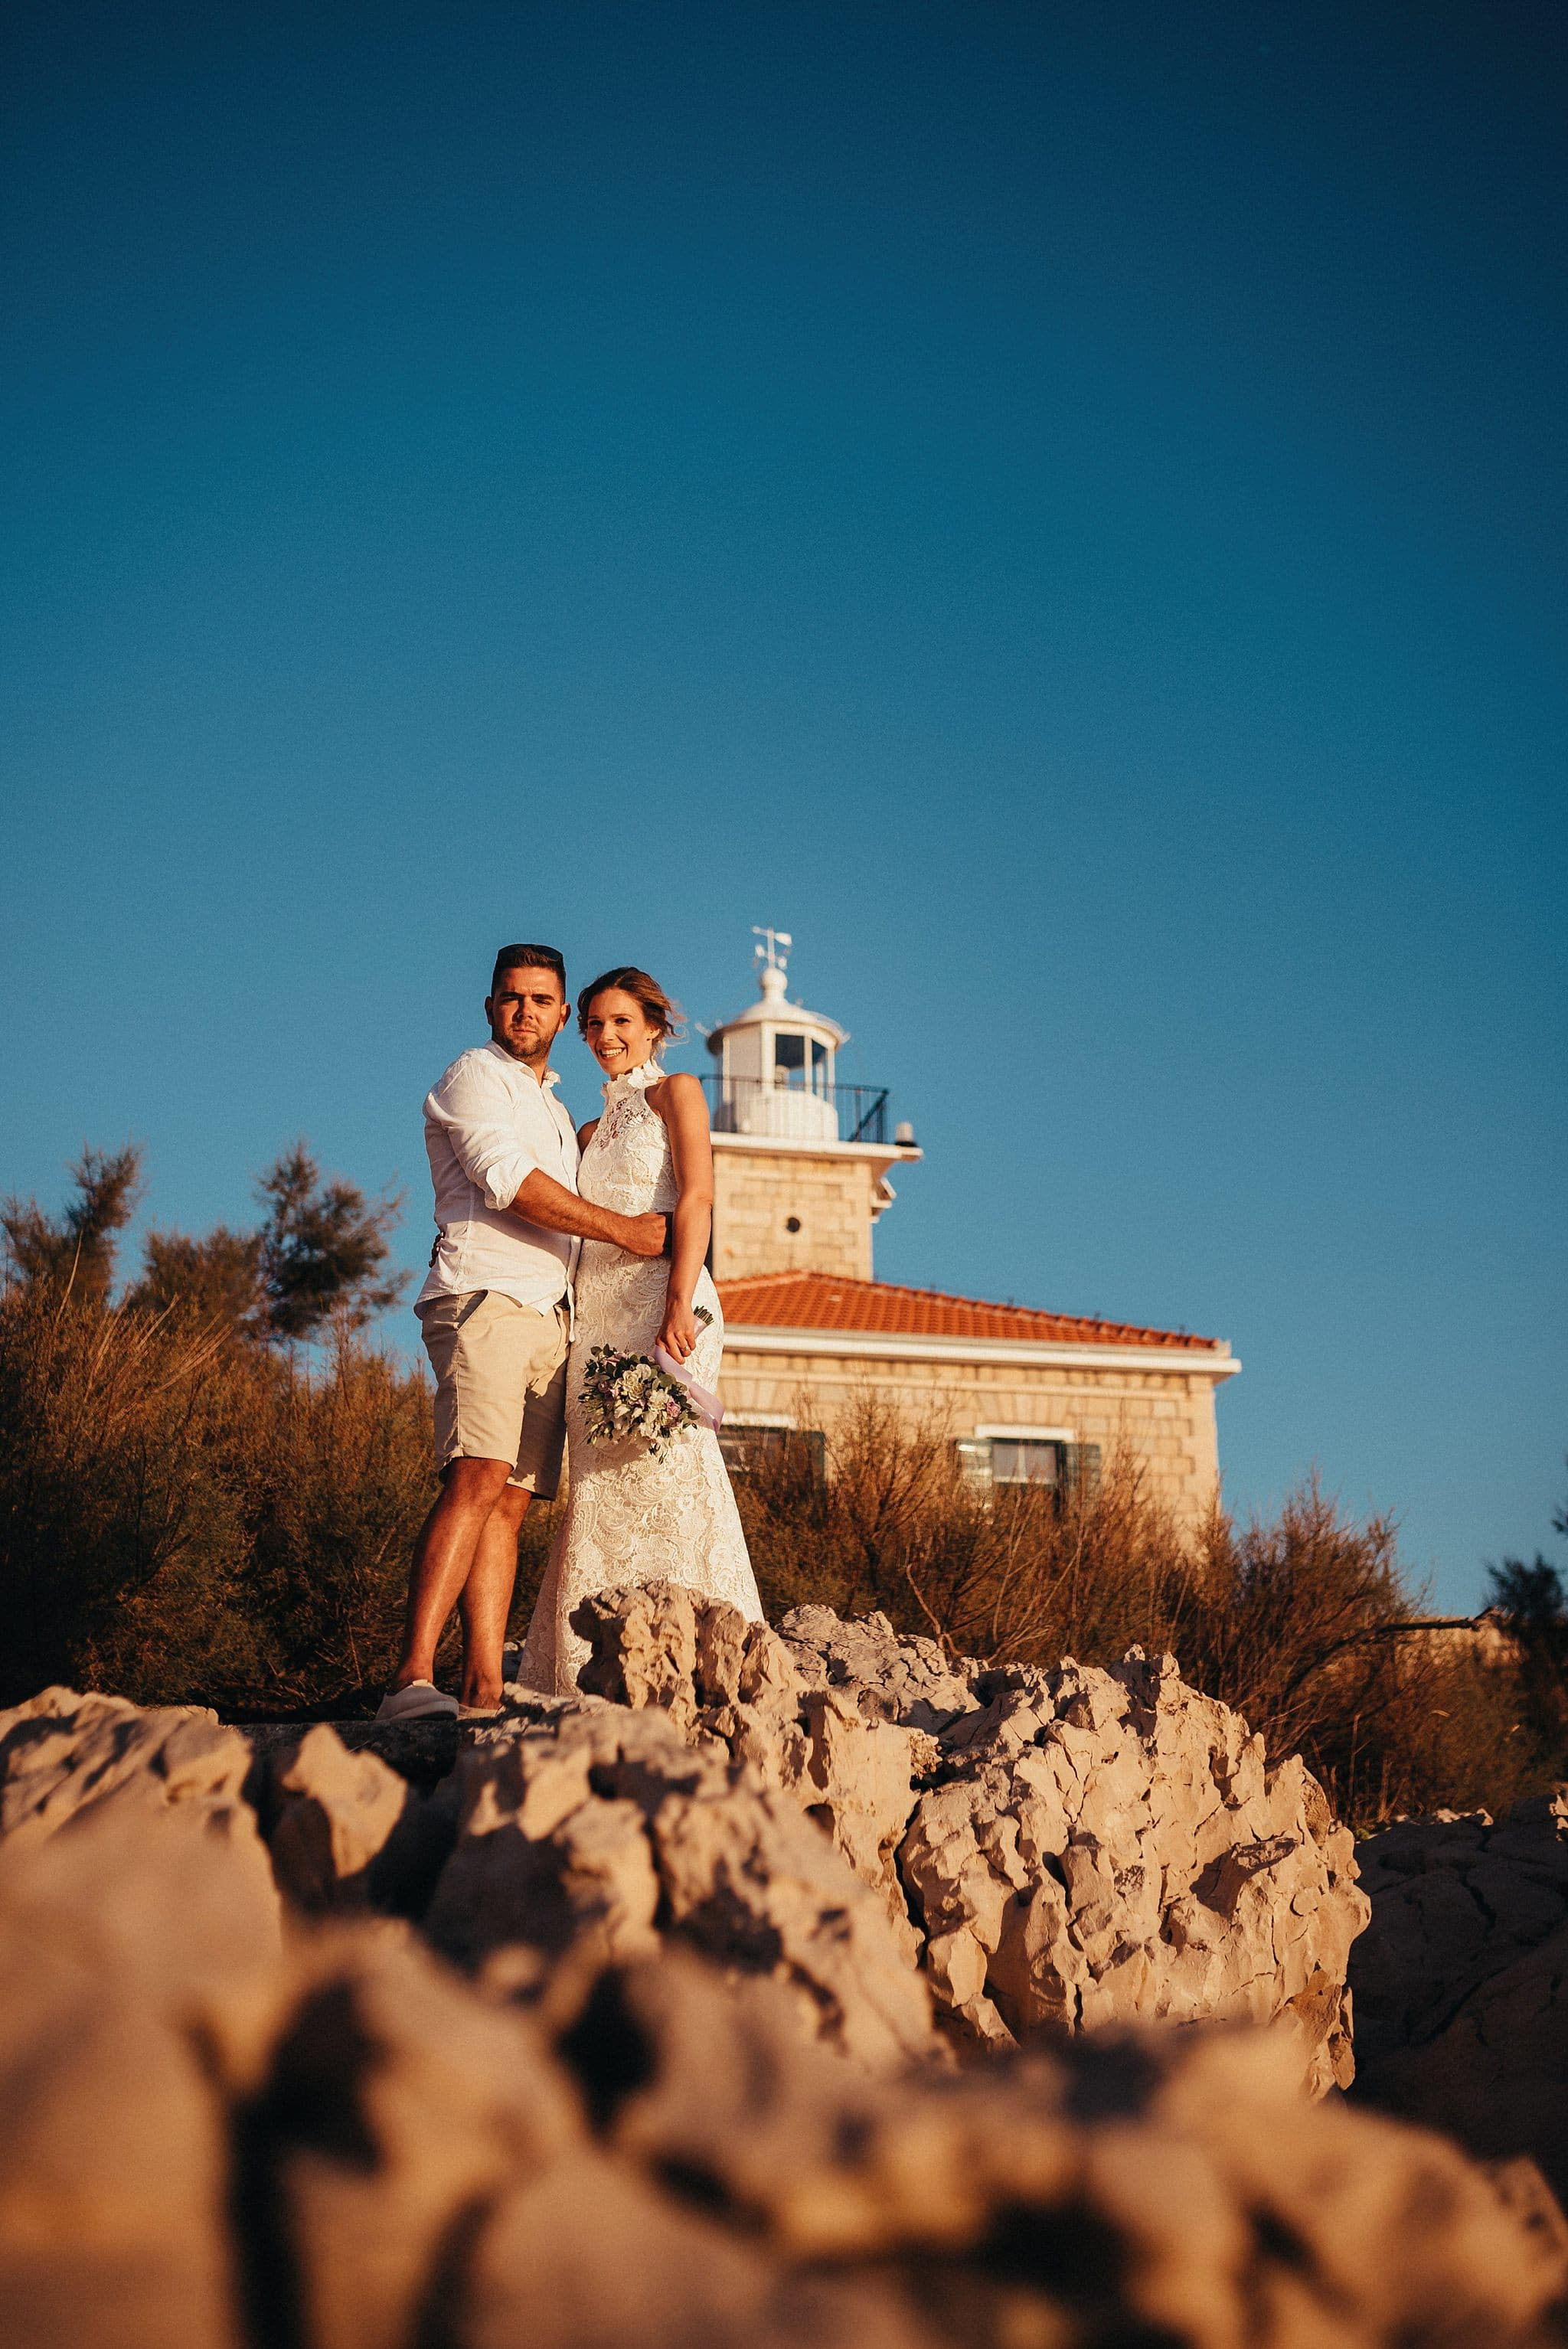 Wedding photography in Makarska at St. Peter lighthouse